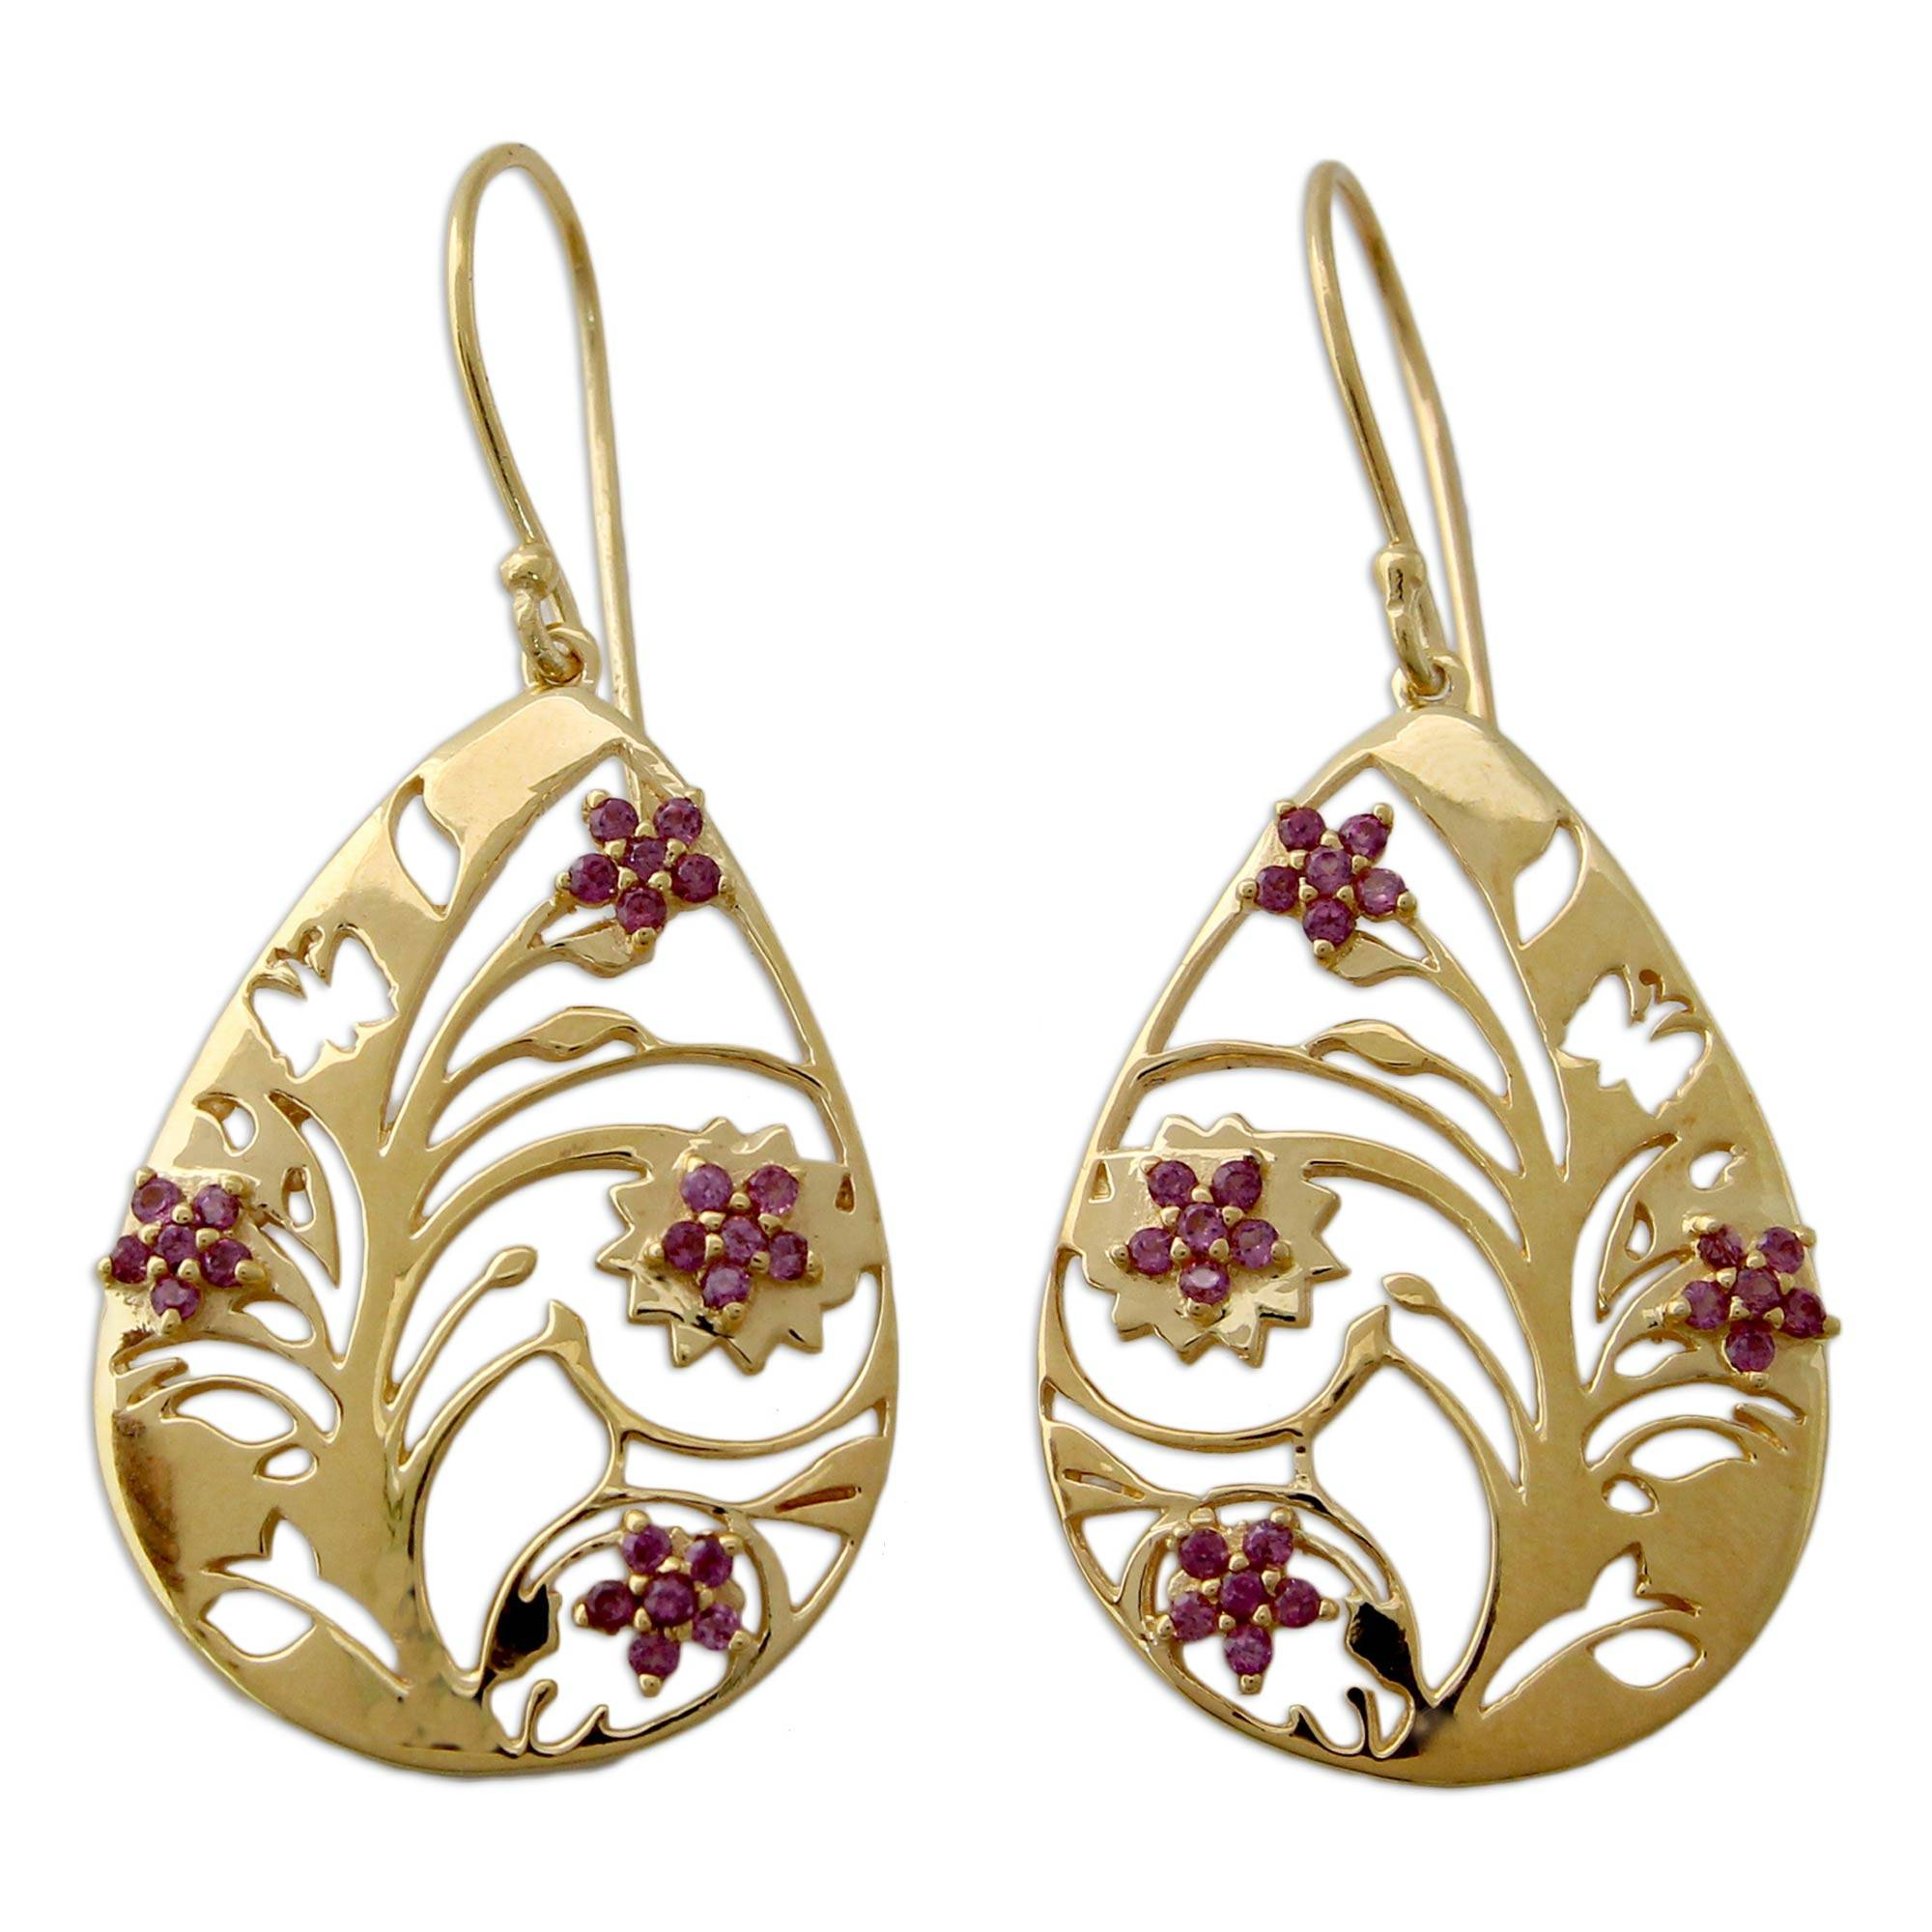 India 22k Gold Vermeil Rhodolite Tree Of Life Earrings Jali